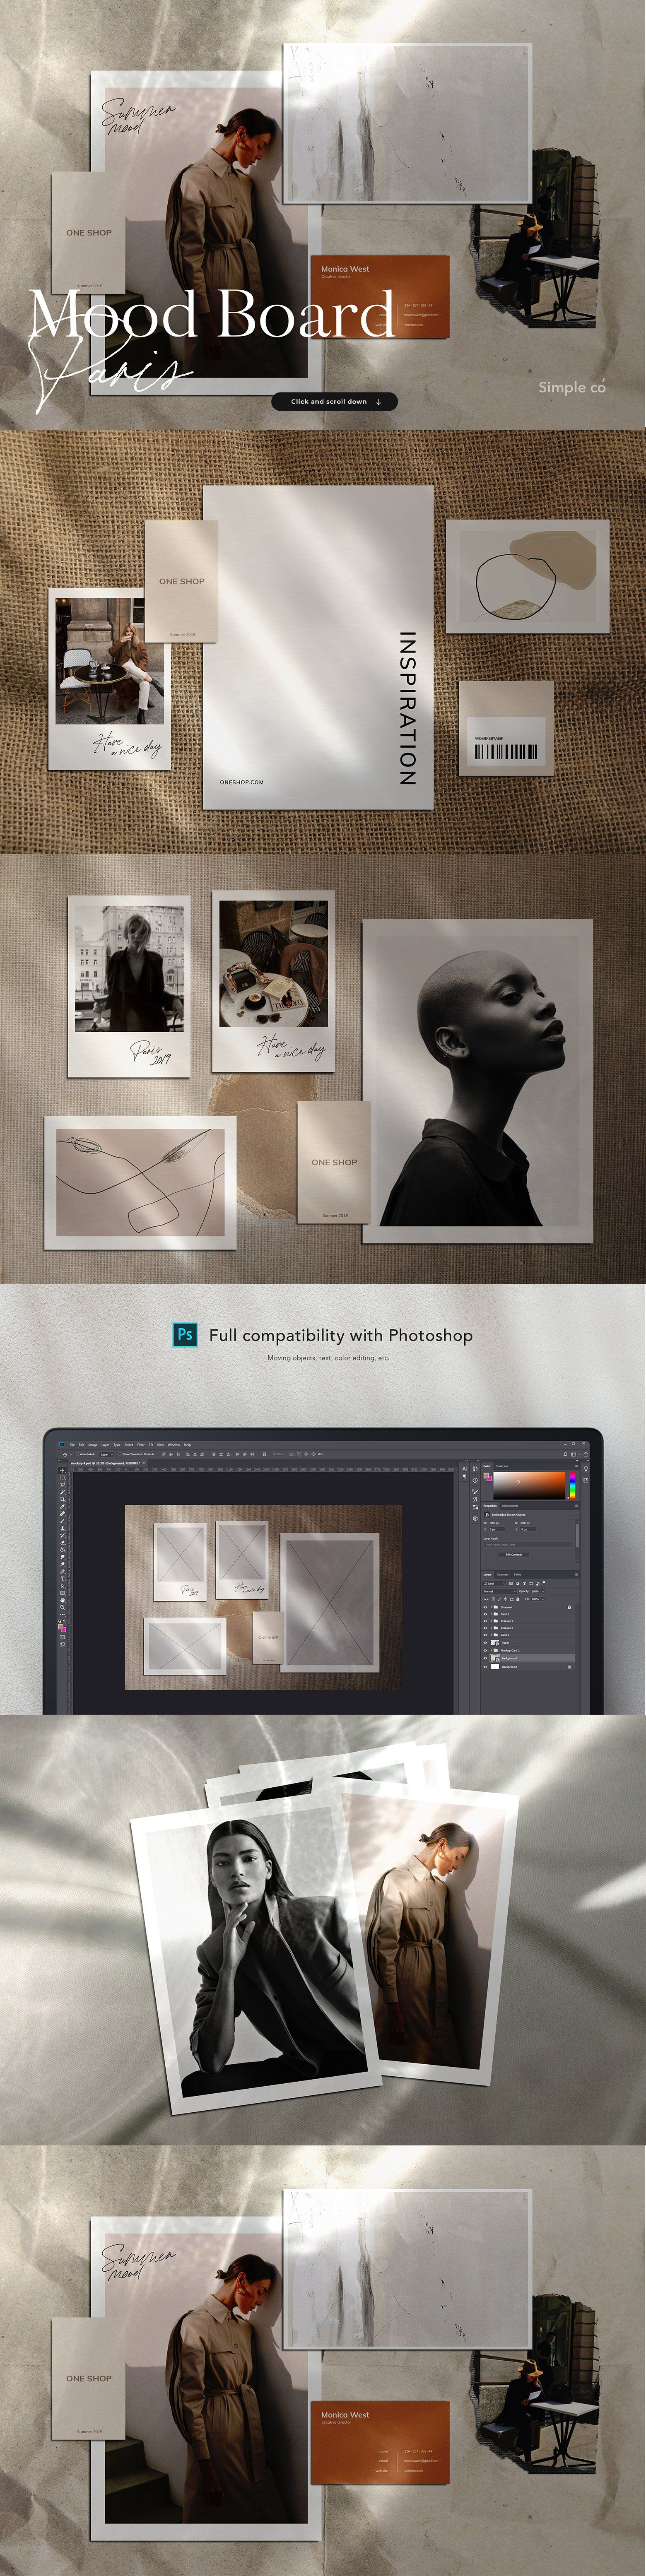 This Bundle Contains All Of Our Mockups Buying Our Bundle You Get Free Updates This Means That All Our Future Mocku Ipad Mockup Macbook Mockup Layout Design